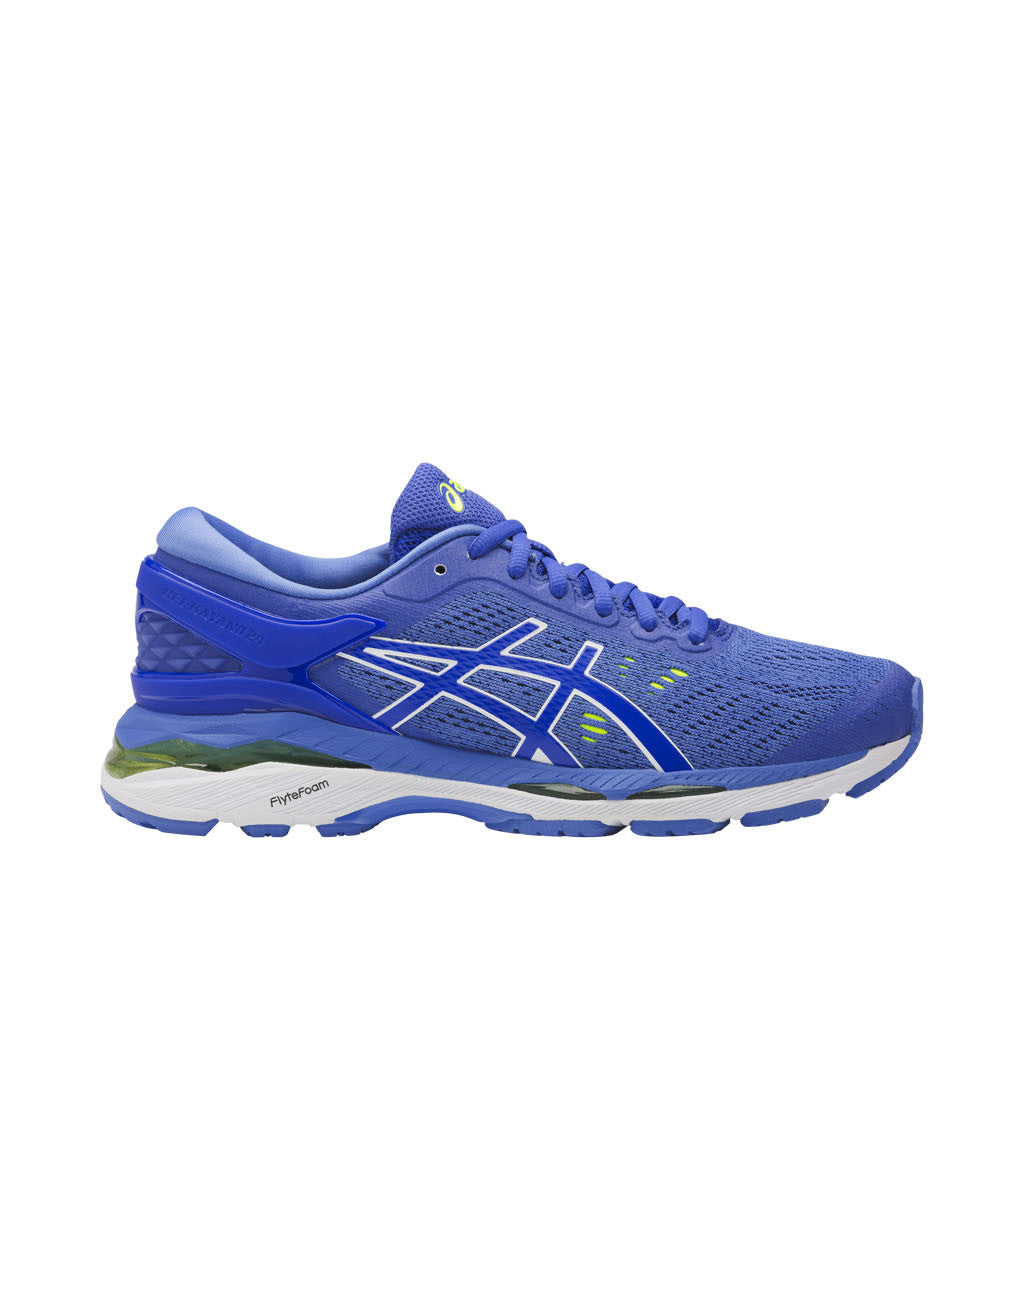 ASICS GEL-Kayano 24 (Wide - D) (Women's)6.5_master_image